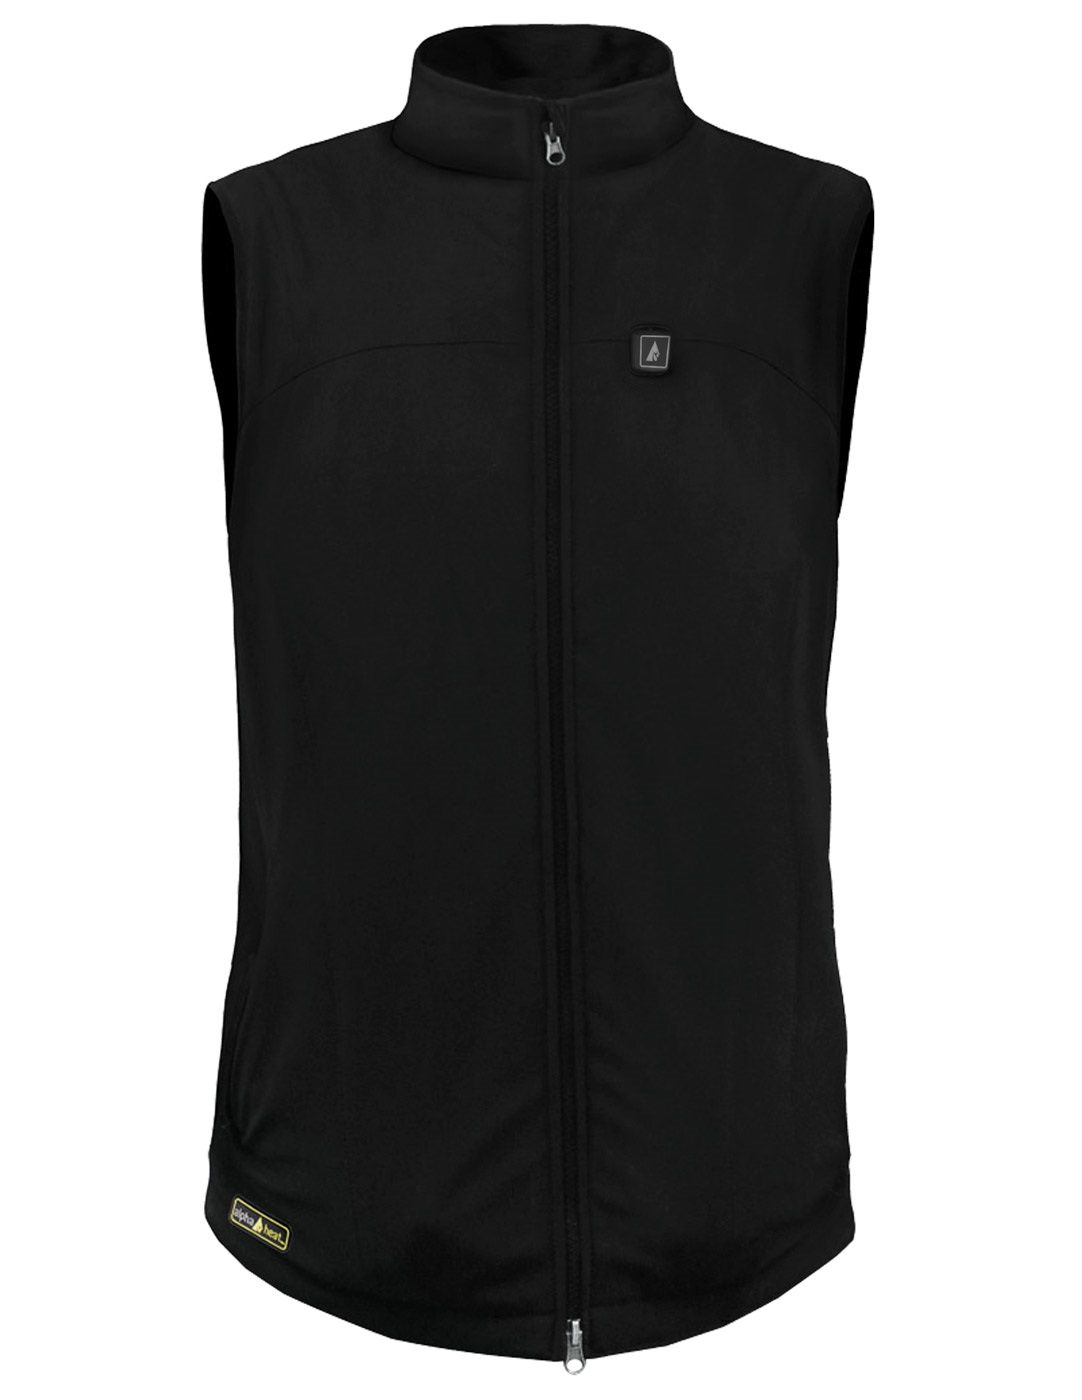 The ActionHeat battery heated vests are revolutionary in the world of heated clothing. Using the patented 5V signal technology, it allows for any 5V battery to be used with the ActionHeat Jackets and Vests. This allows for unlimited battery options and